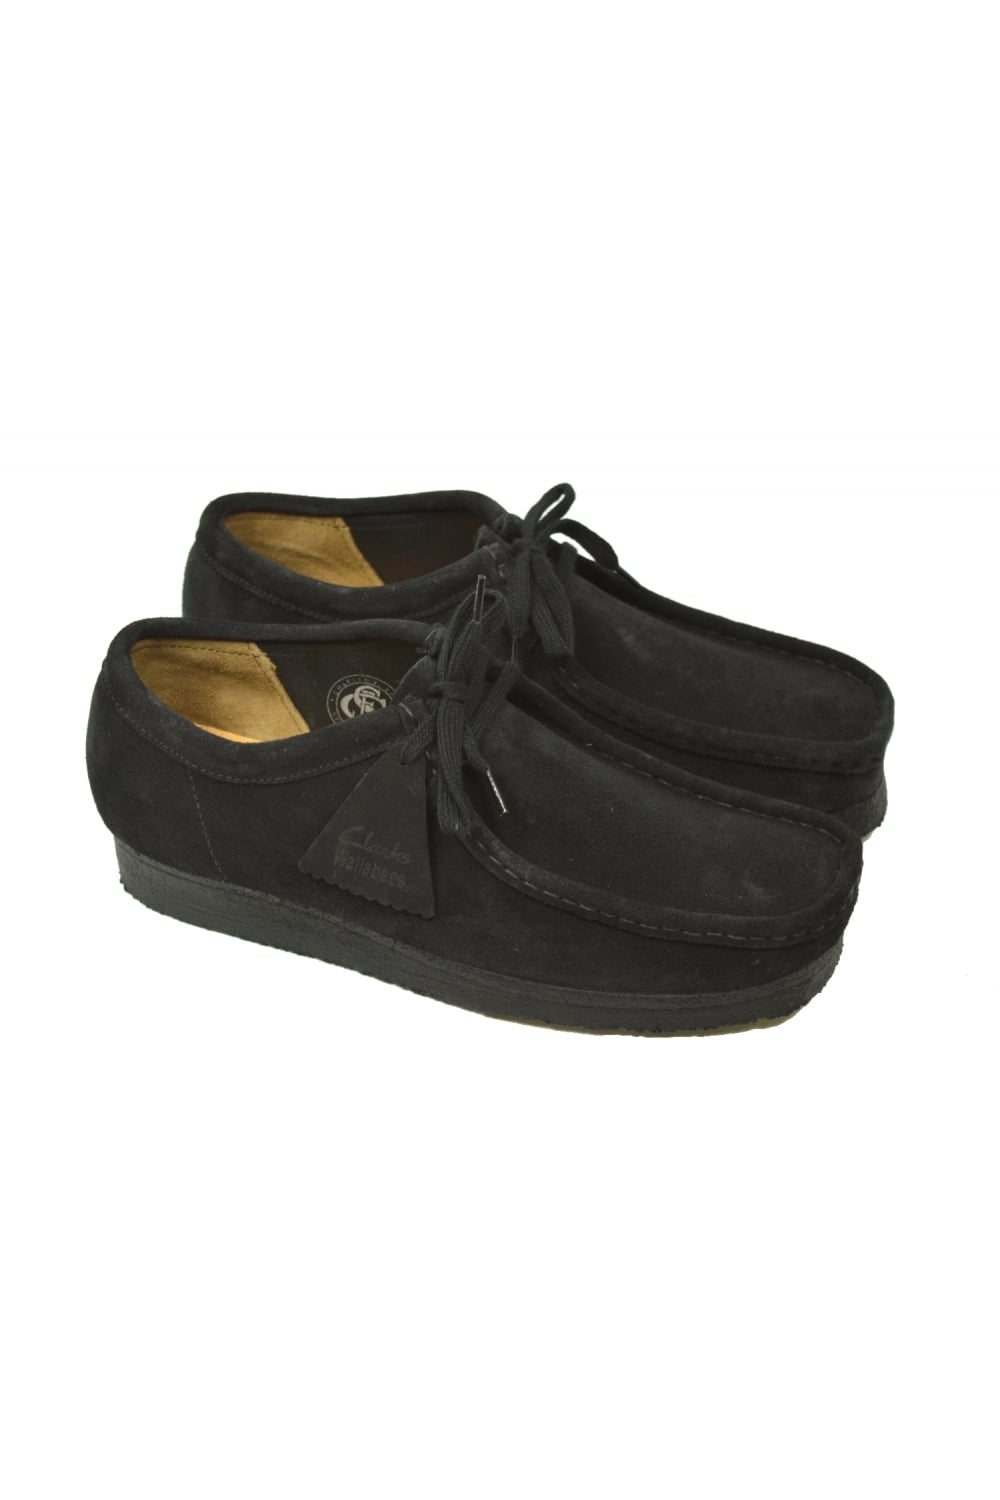 a4a9cb40fa84d2 Clarks Originals Wallabee Shoes (Black Suede) | ThirtySix